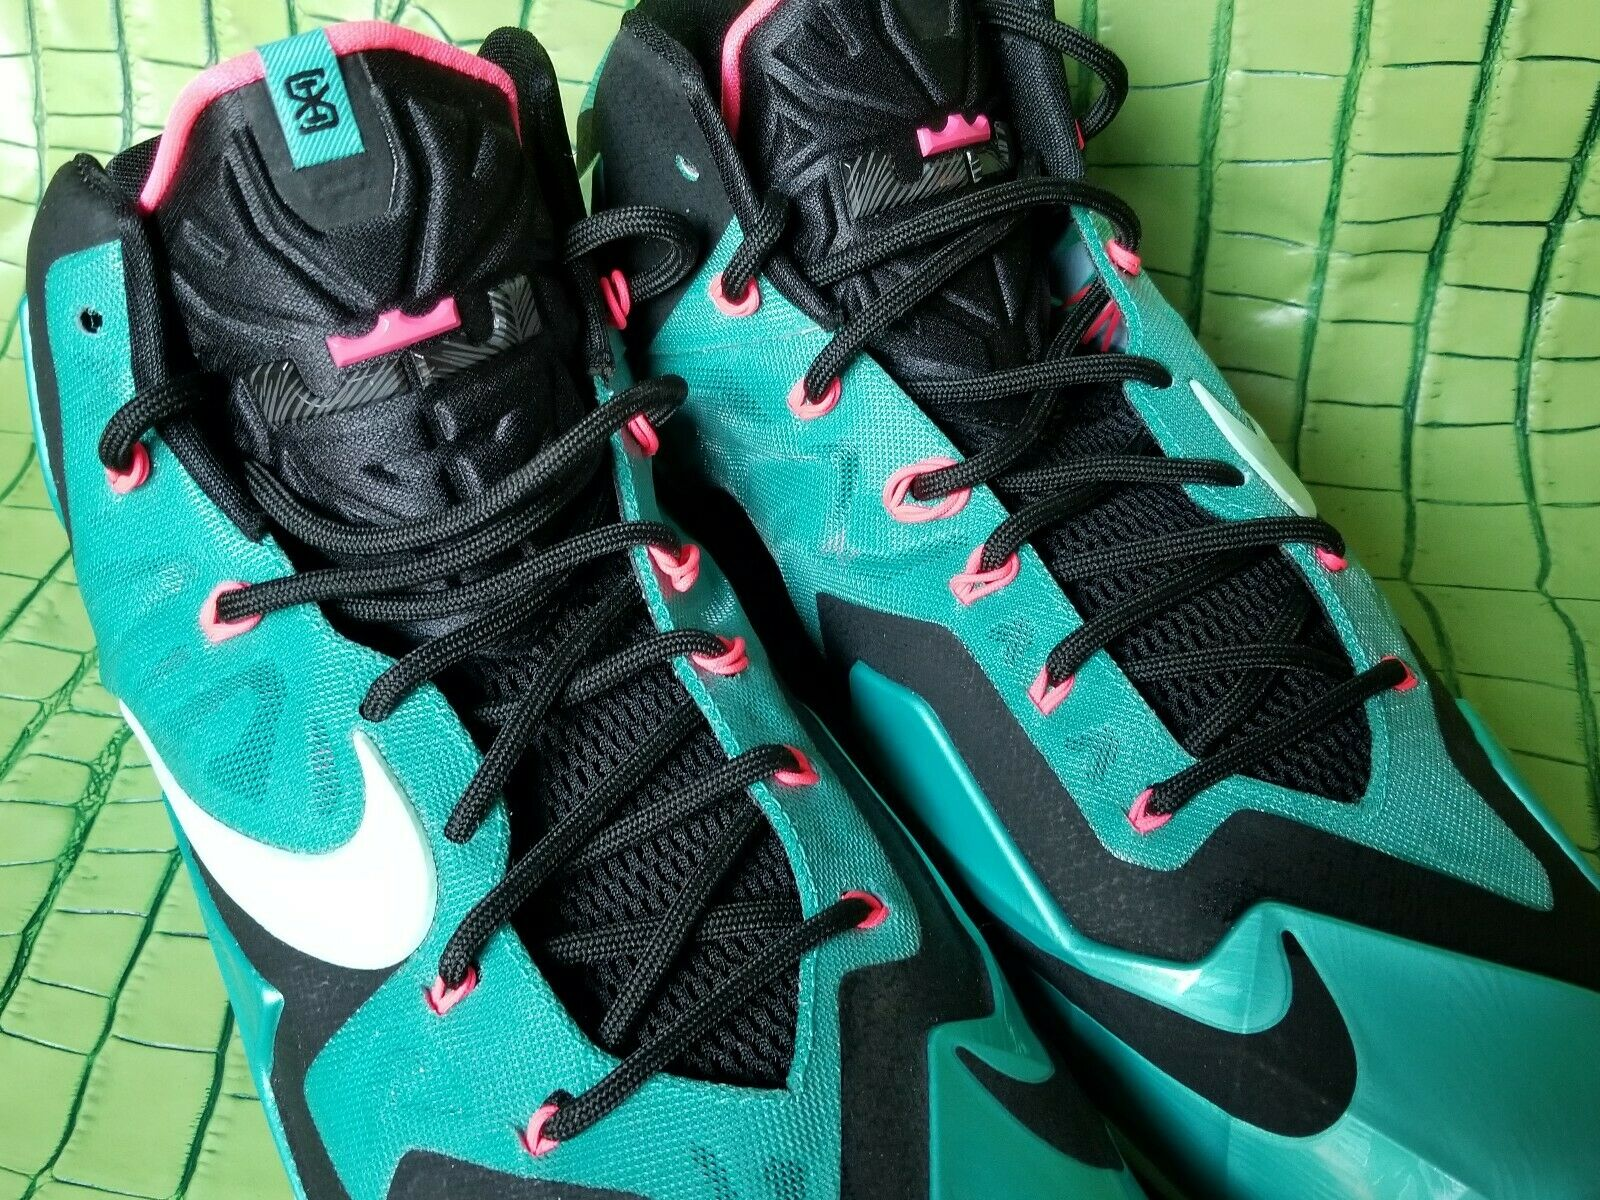 NIKE LEBRON XI 11 SOUTH BEACH BASKETBALL SHOES TURQUOISE PINK SZ 13 [616175-330]